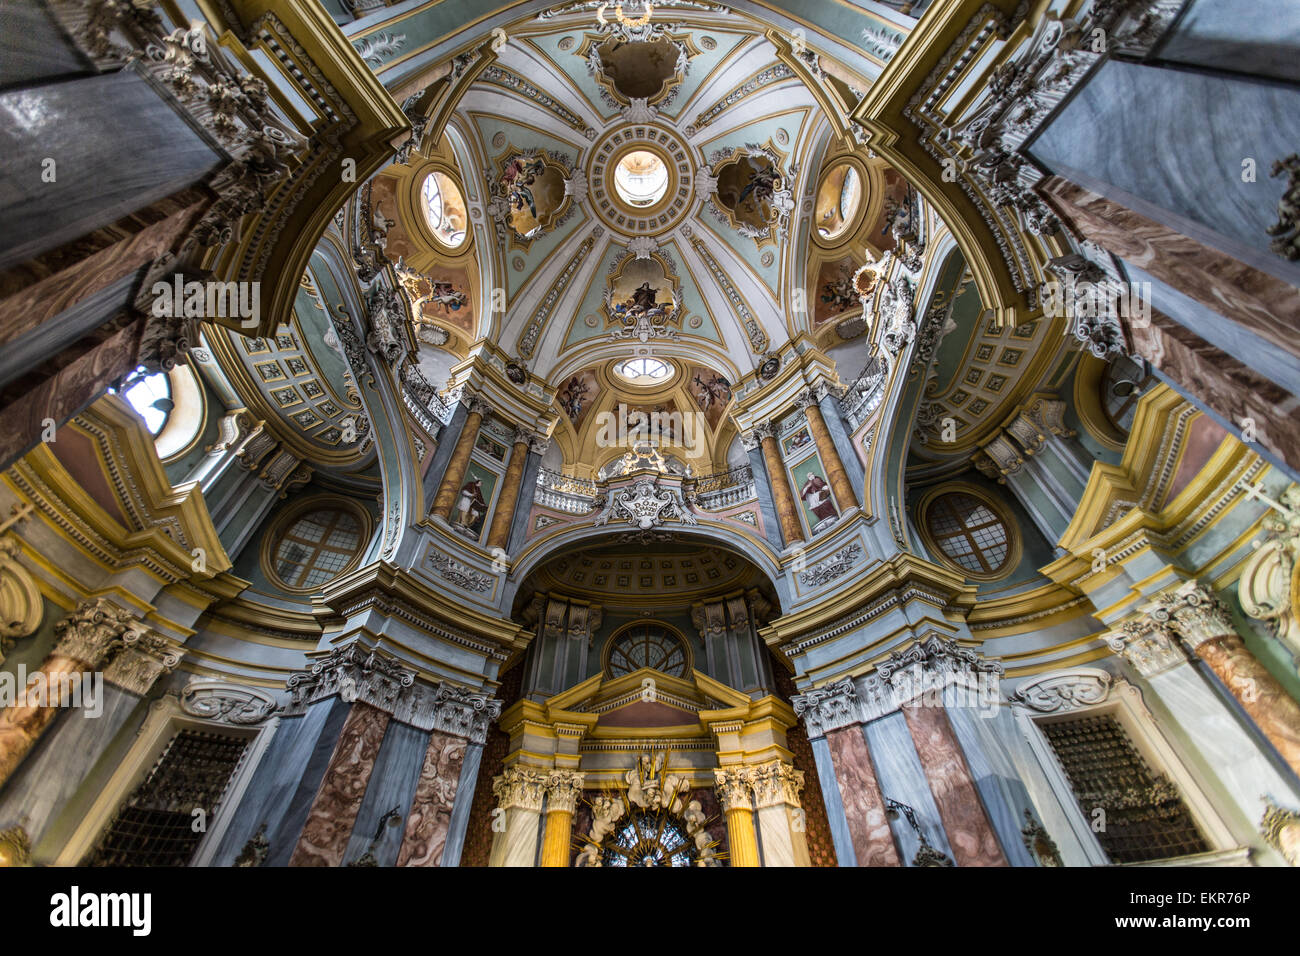 Interior of the Church of Saint Chiara in Bra, a town in the Piedmont region of northern Italy. The style is rococo. - Stock Image